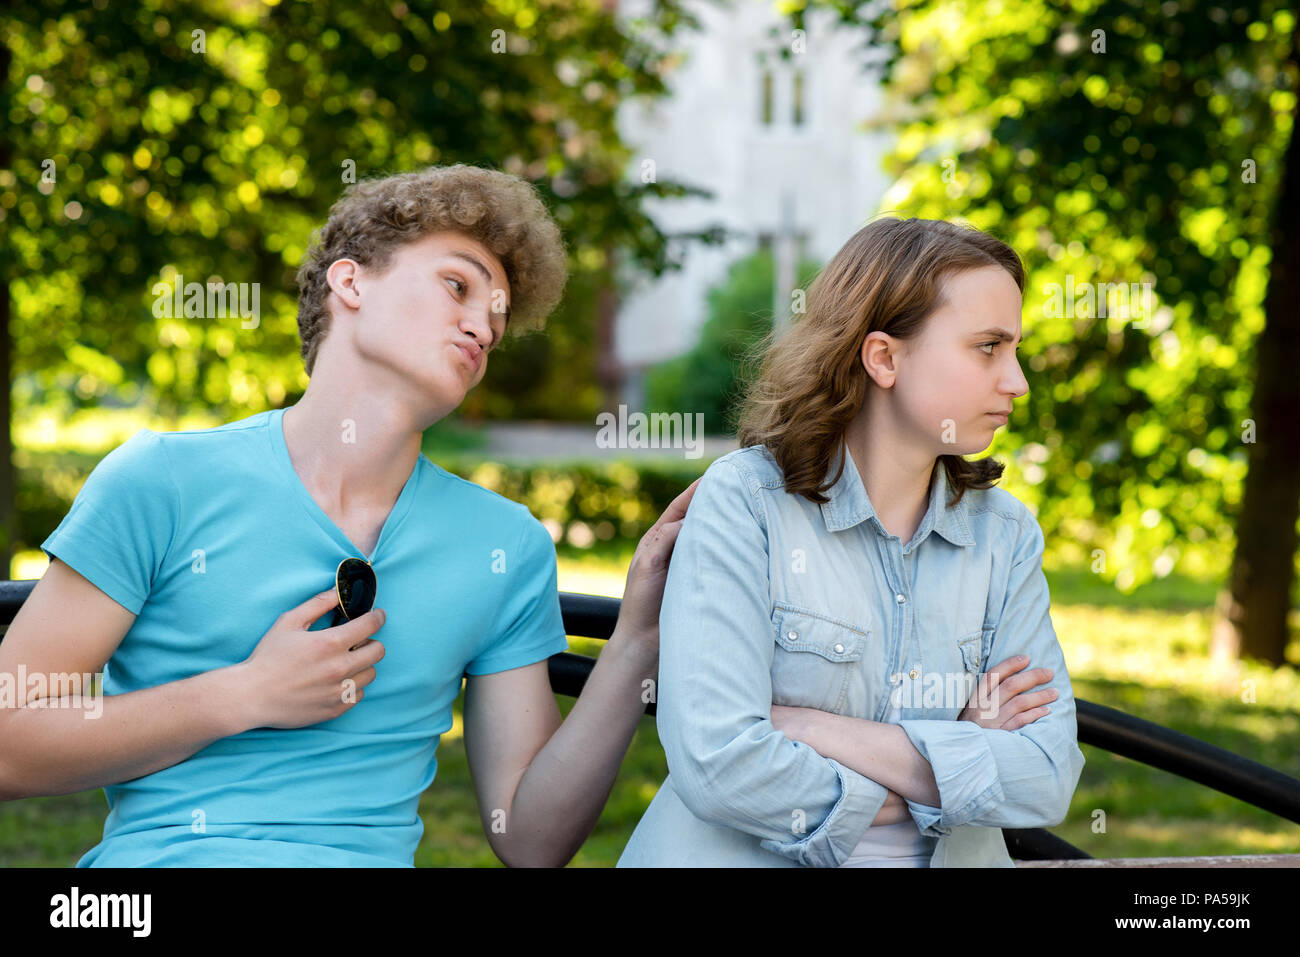 A guy with a girl on a park bench. In summer in the city. The guy asks girl for forgiveness. The girl is unhappy upset there is no reluctance to talk. - Stock Image